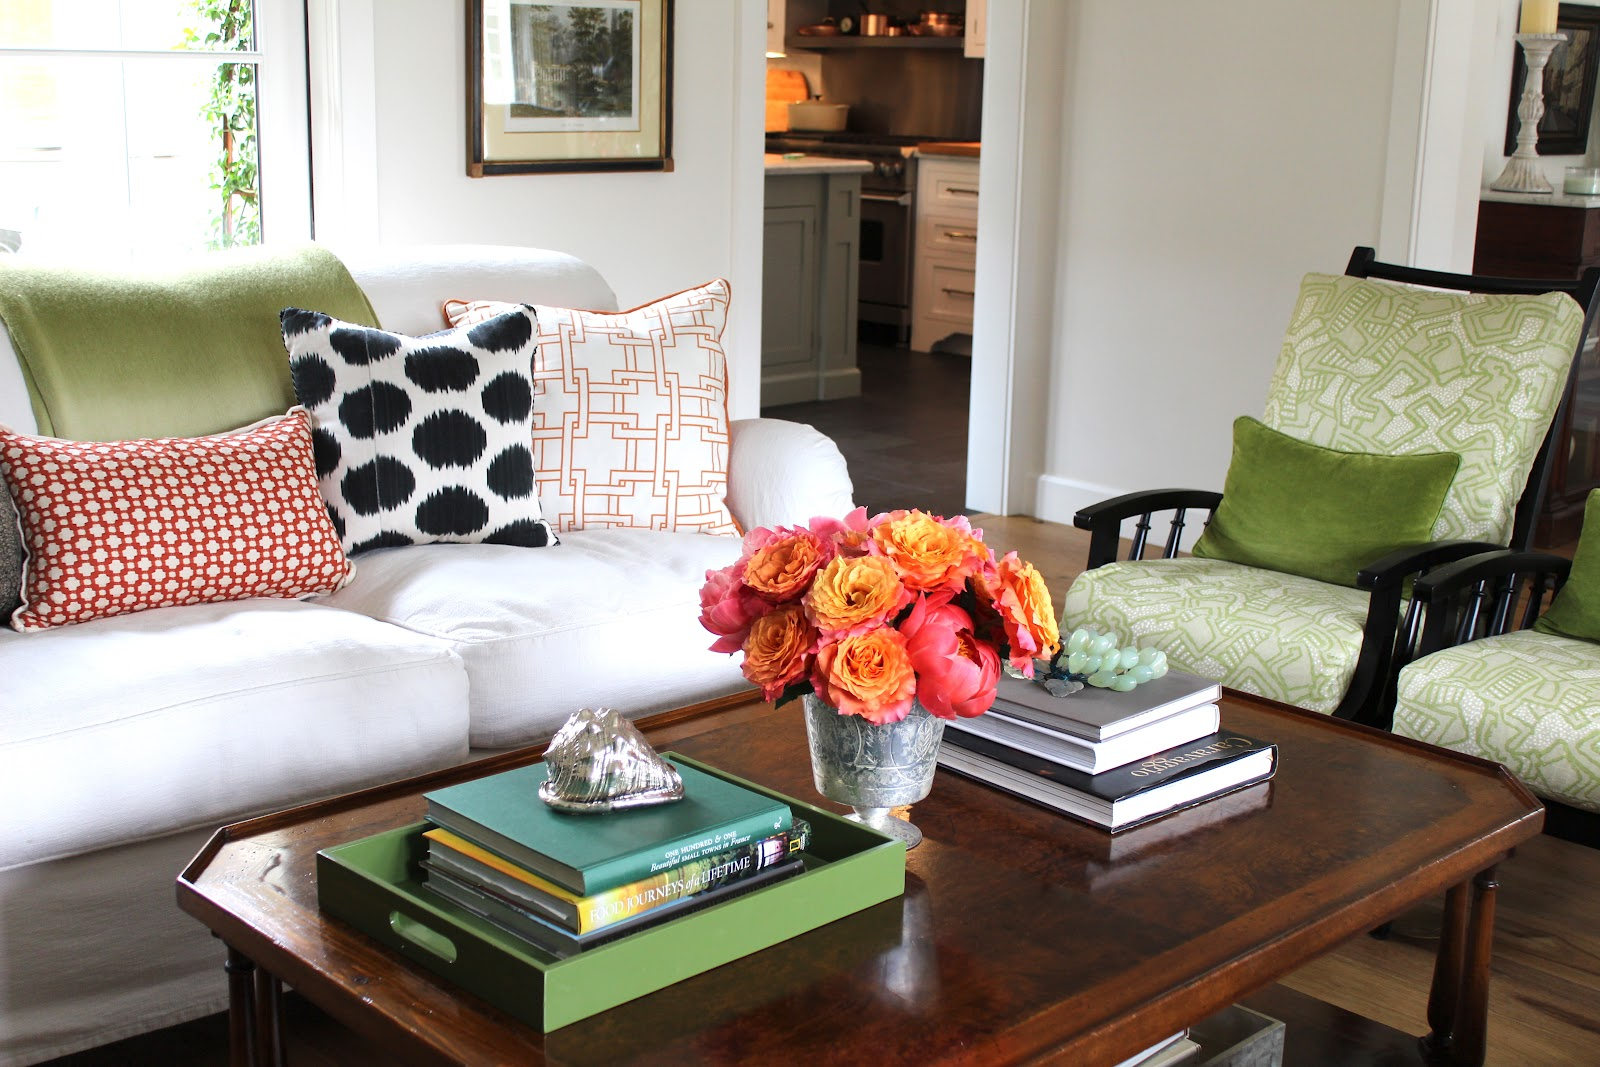 stylist better homes and gardens living room furniture. Laura  the stylist brought these bright peonies and roses mixed up my pillows Alie John now have those pillow addiction has moved on Our Home in Better Homes Gardens Classic Casual